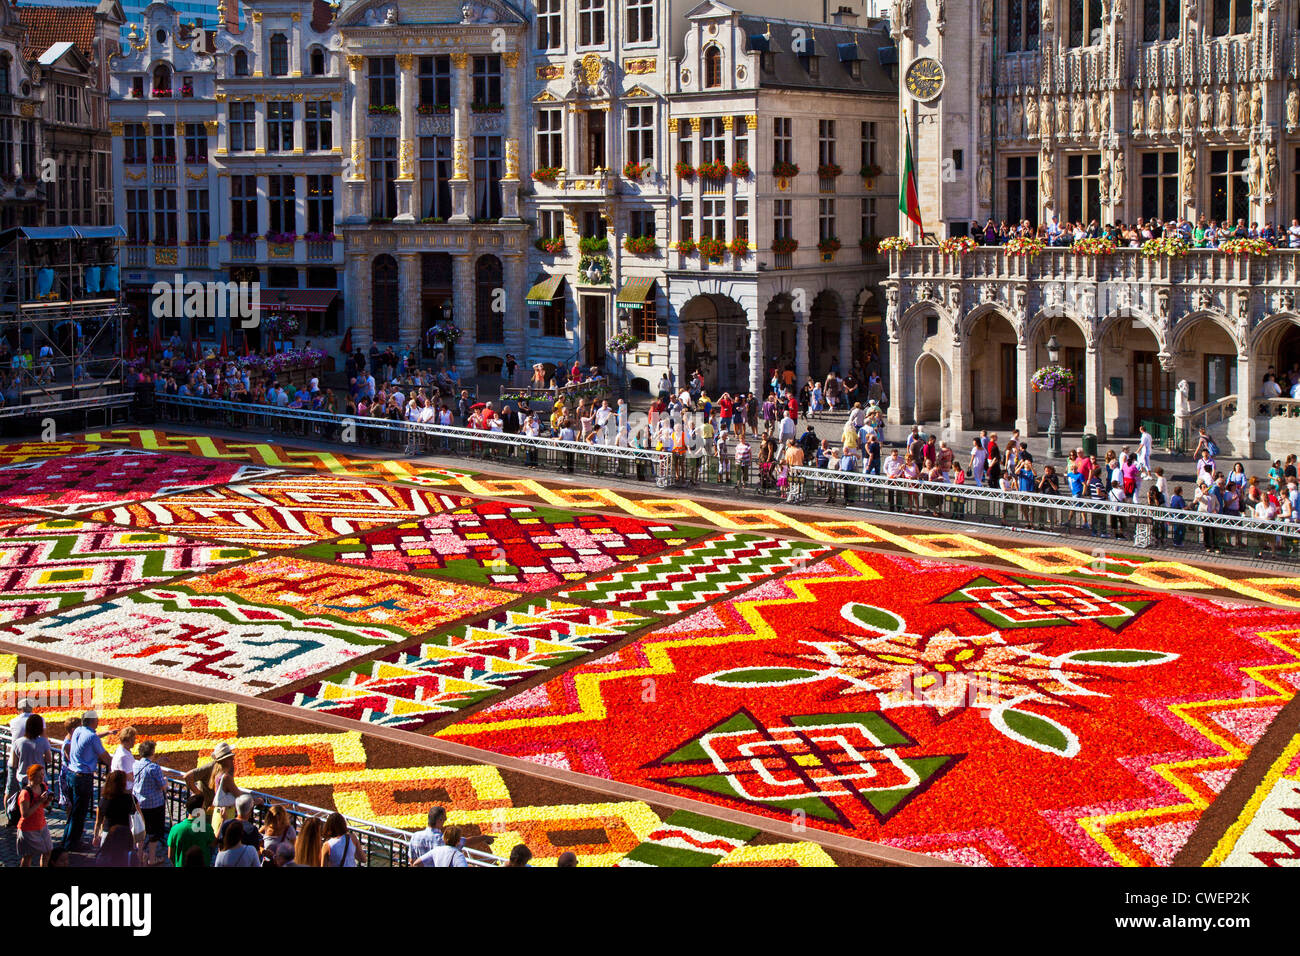 2012 flower carpet tapis de fleurs in the grand place grote markt stock photo royalty free. Black Bedroom Furniture Sets. Home Design Ideas